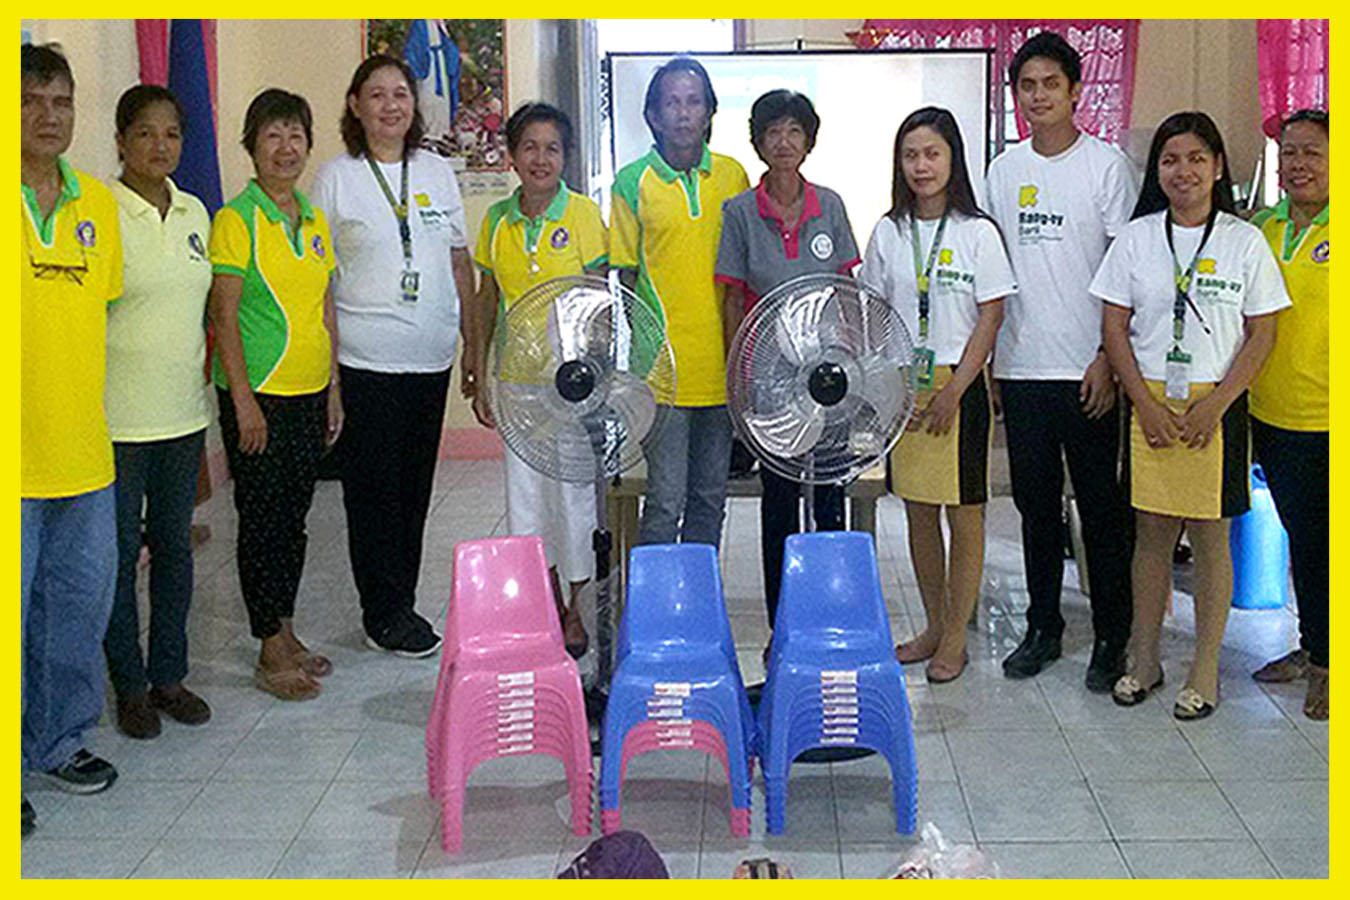 Donation of stand fans and mini-mono block chairs for Tavora Proper Day Care Center headed by Brgy. Kagawad Soledad Omaeng.